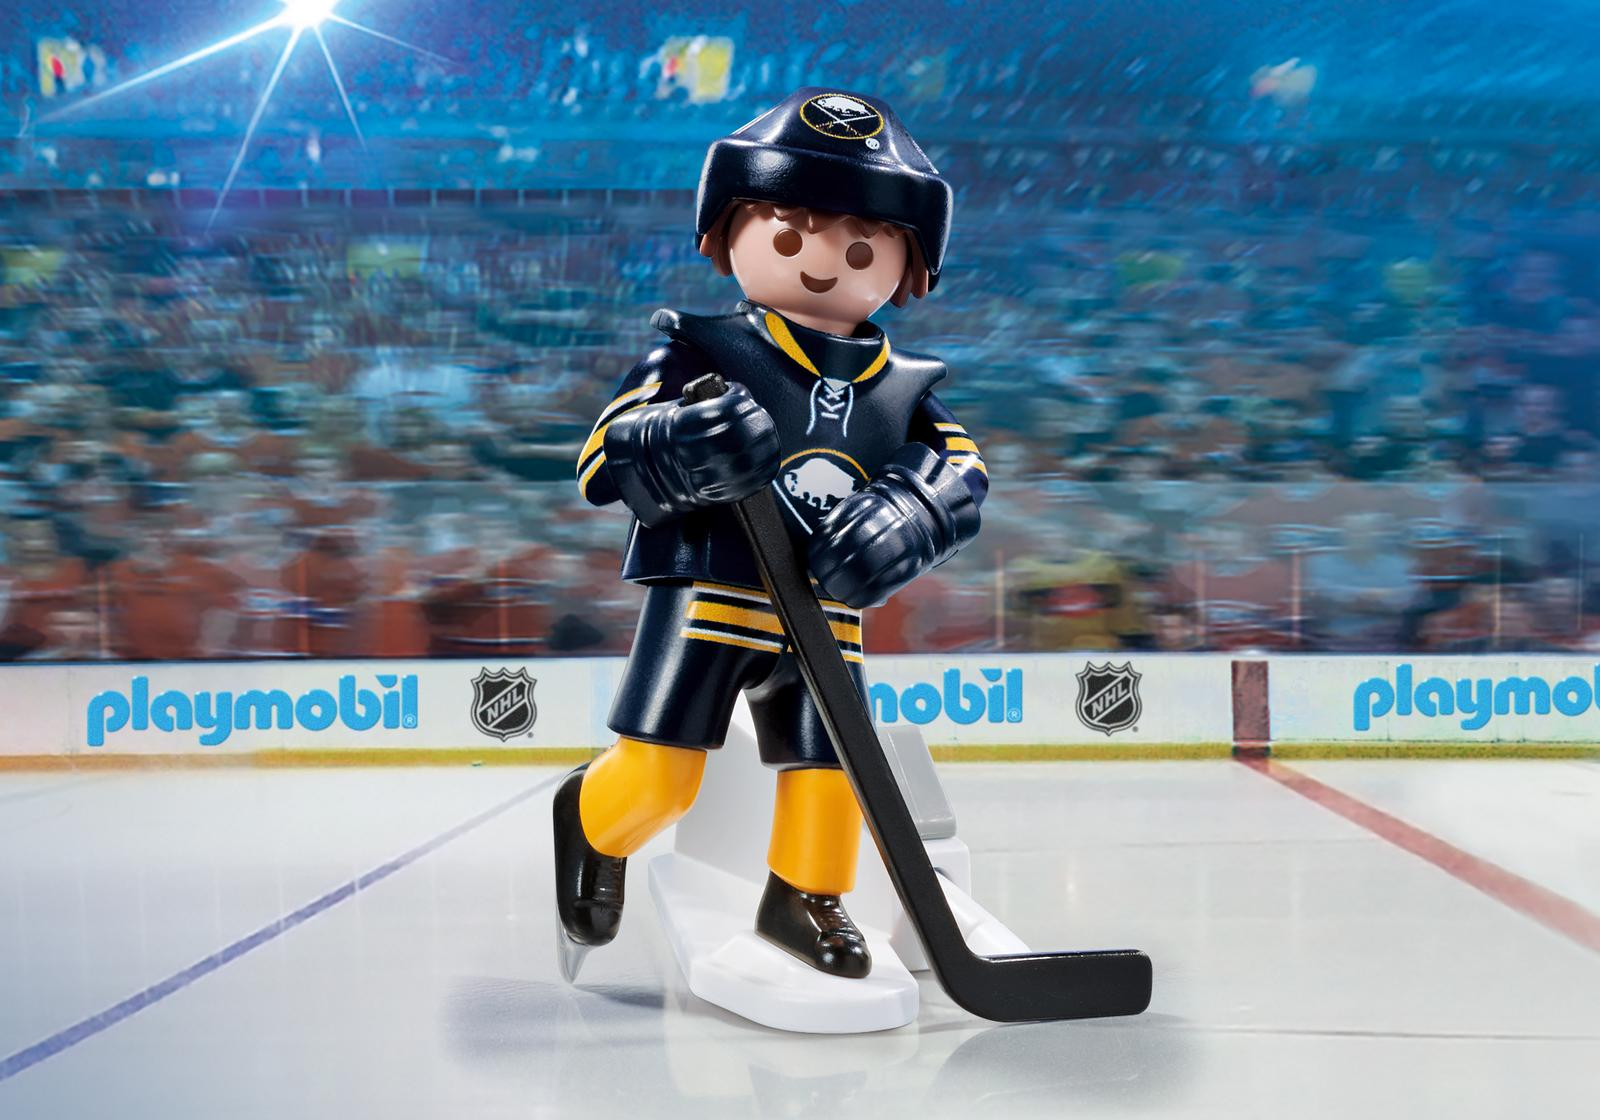 Playmobil #9180 NHL Buffalo Sabres® Player - New Factory Sealed